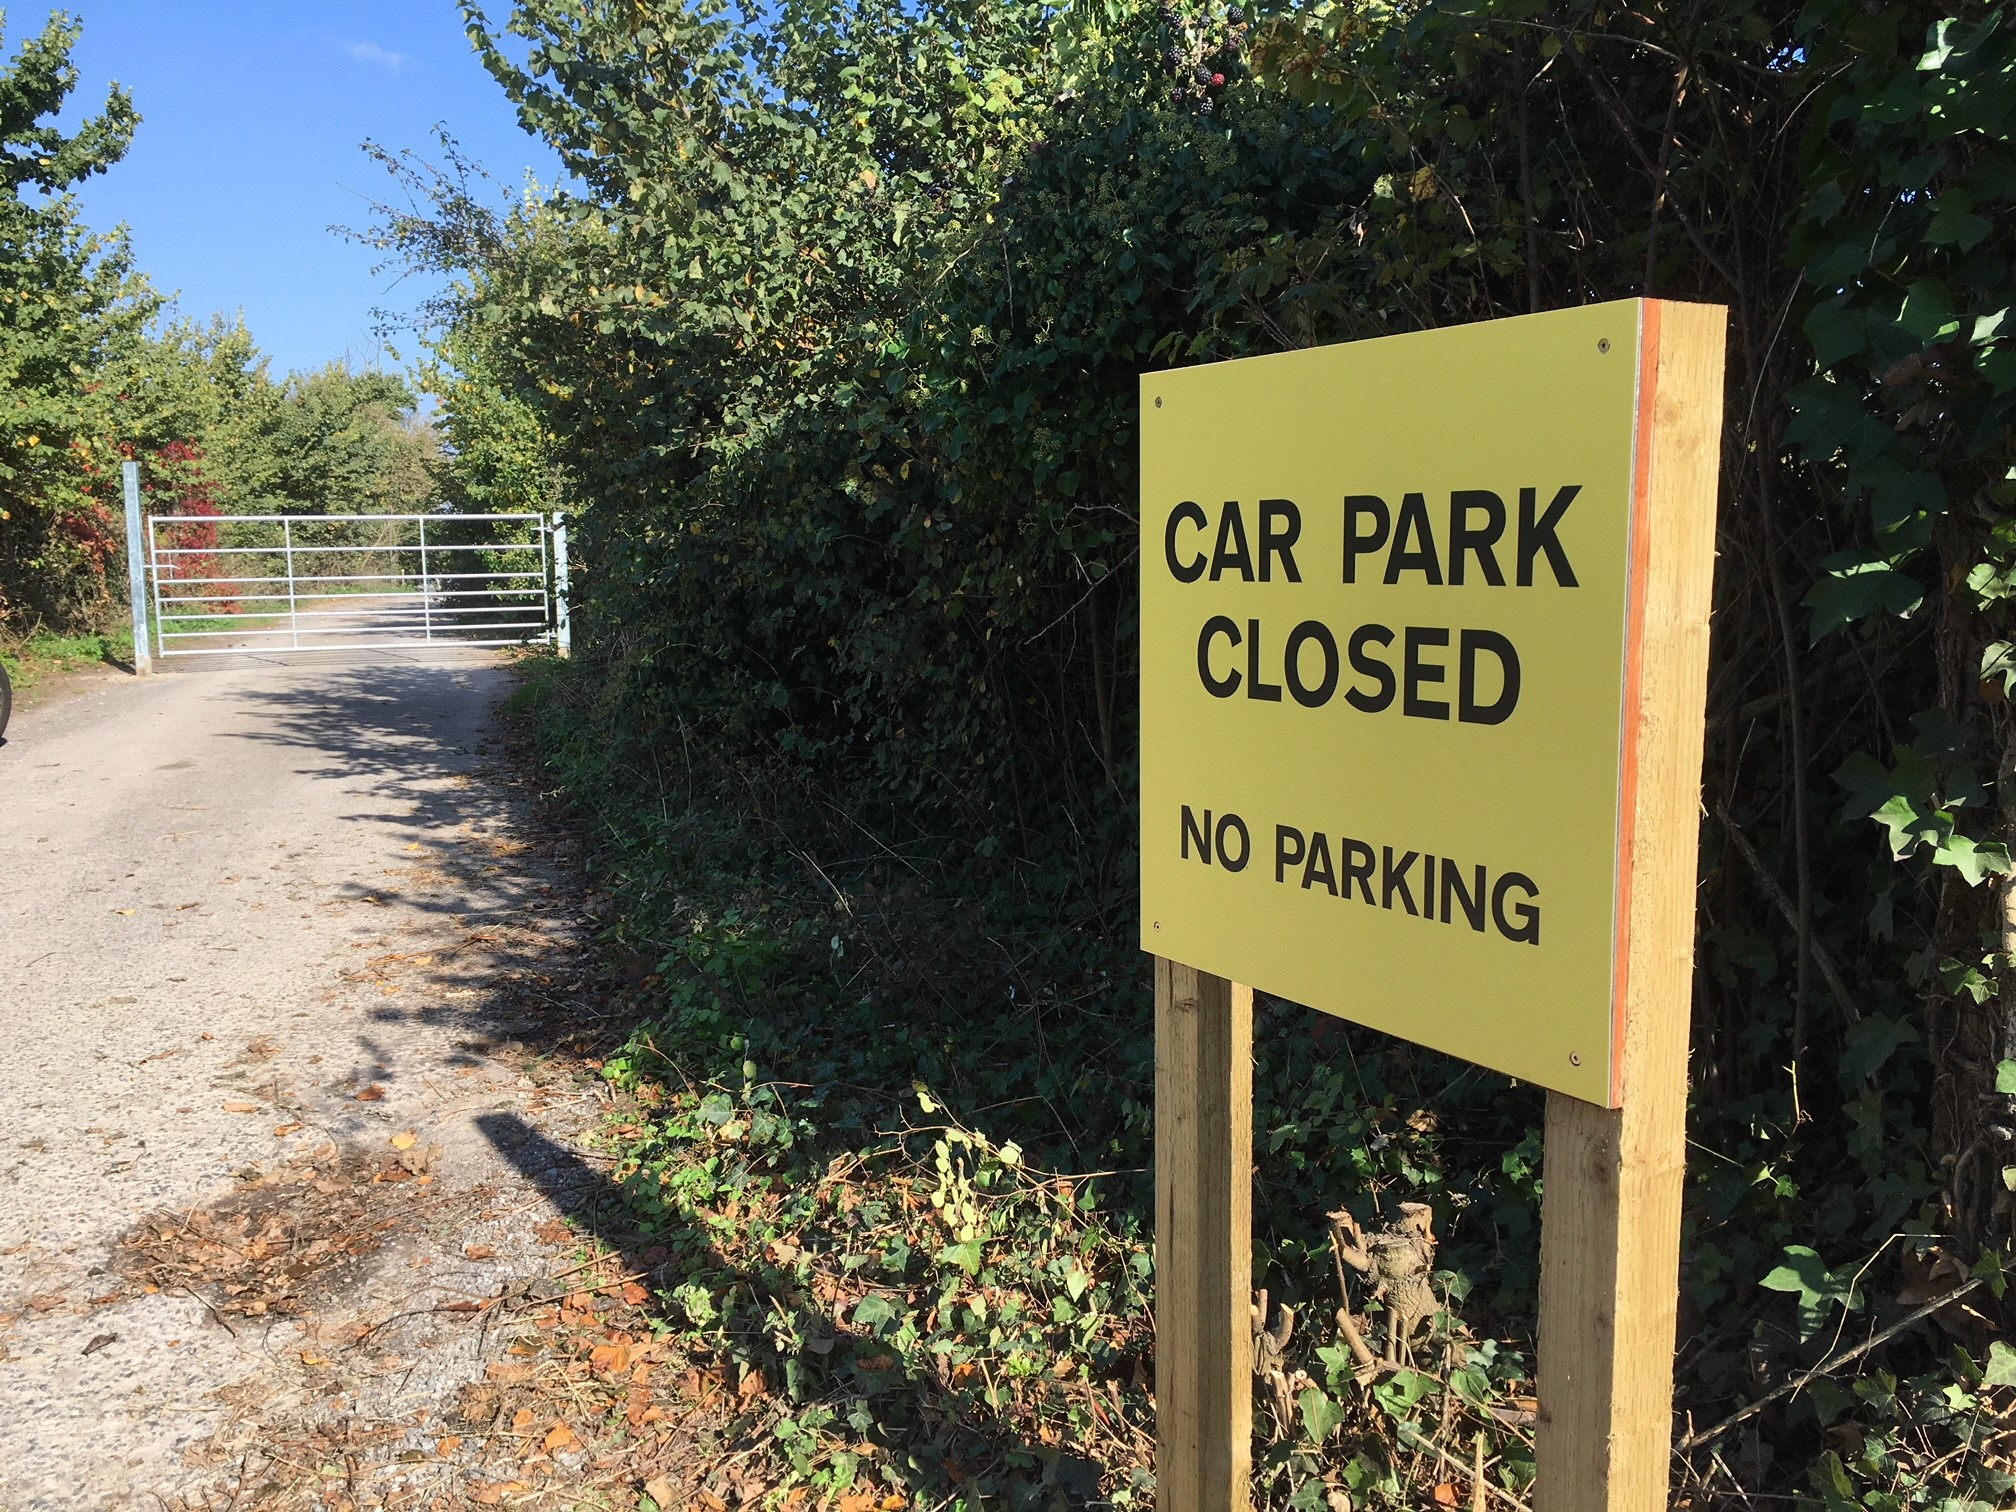 CLOSED: Doniford Car Park has been shut due to concerns over health and safety